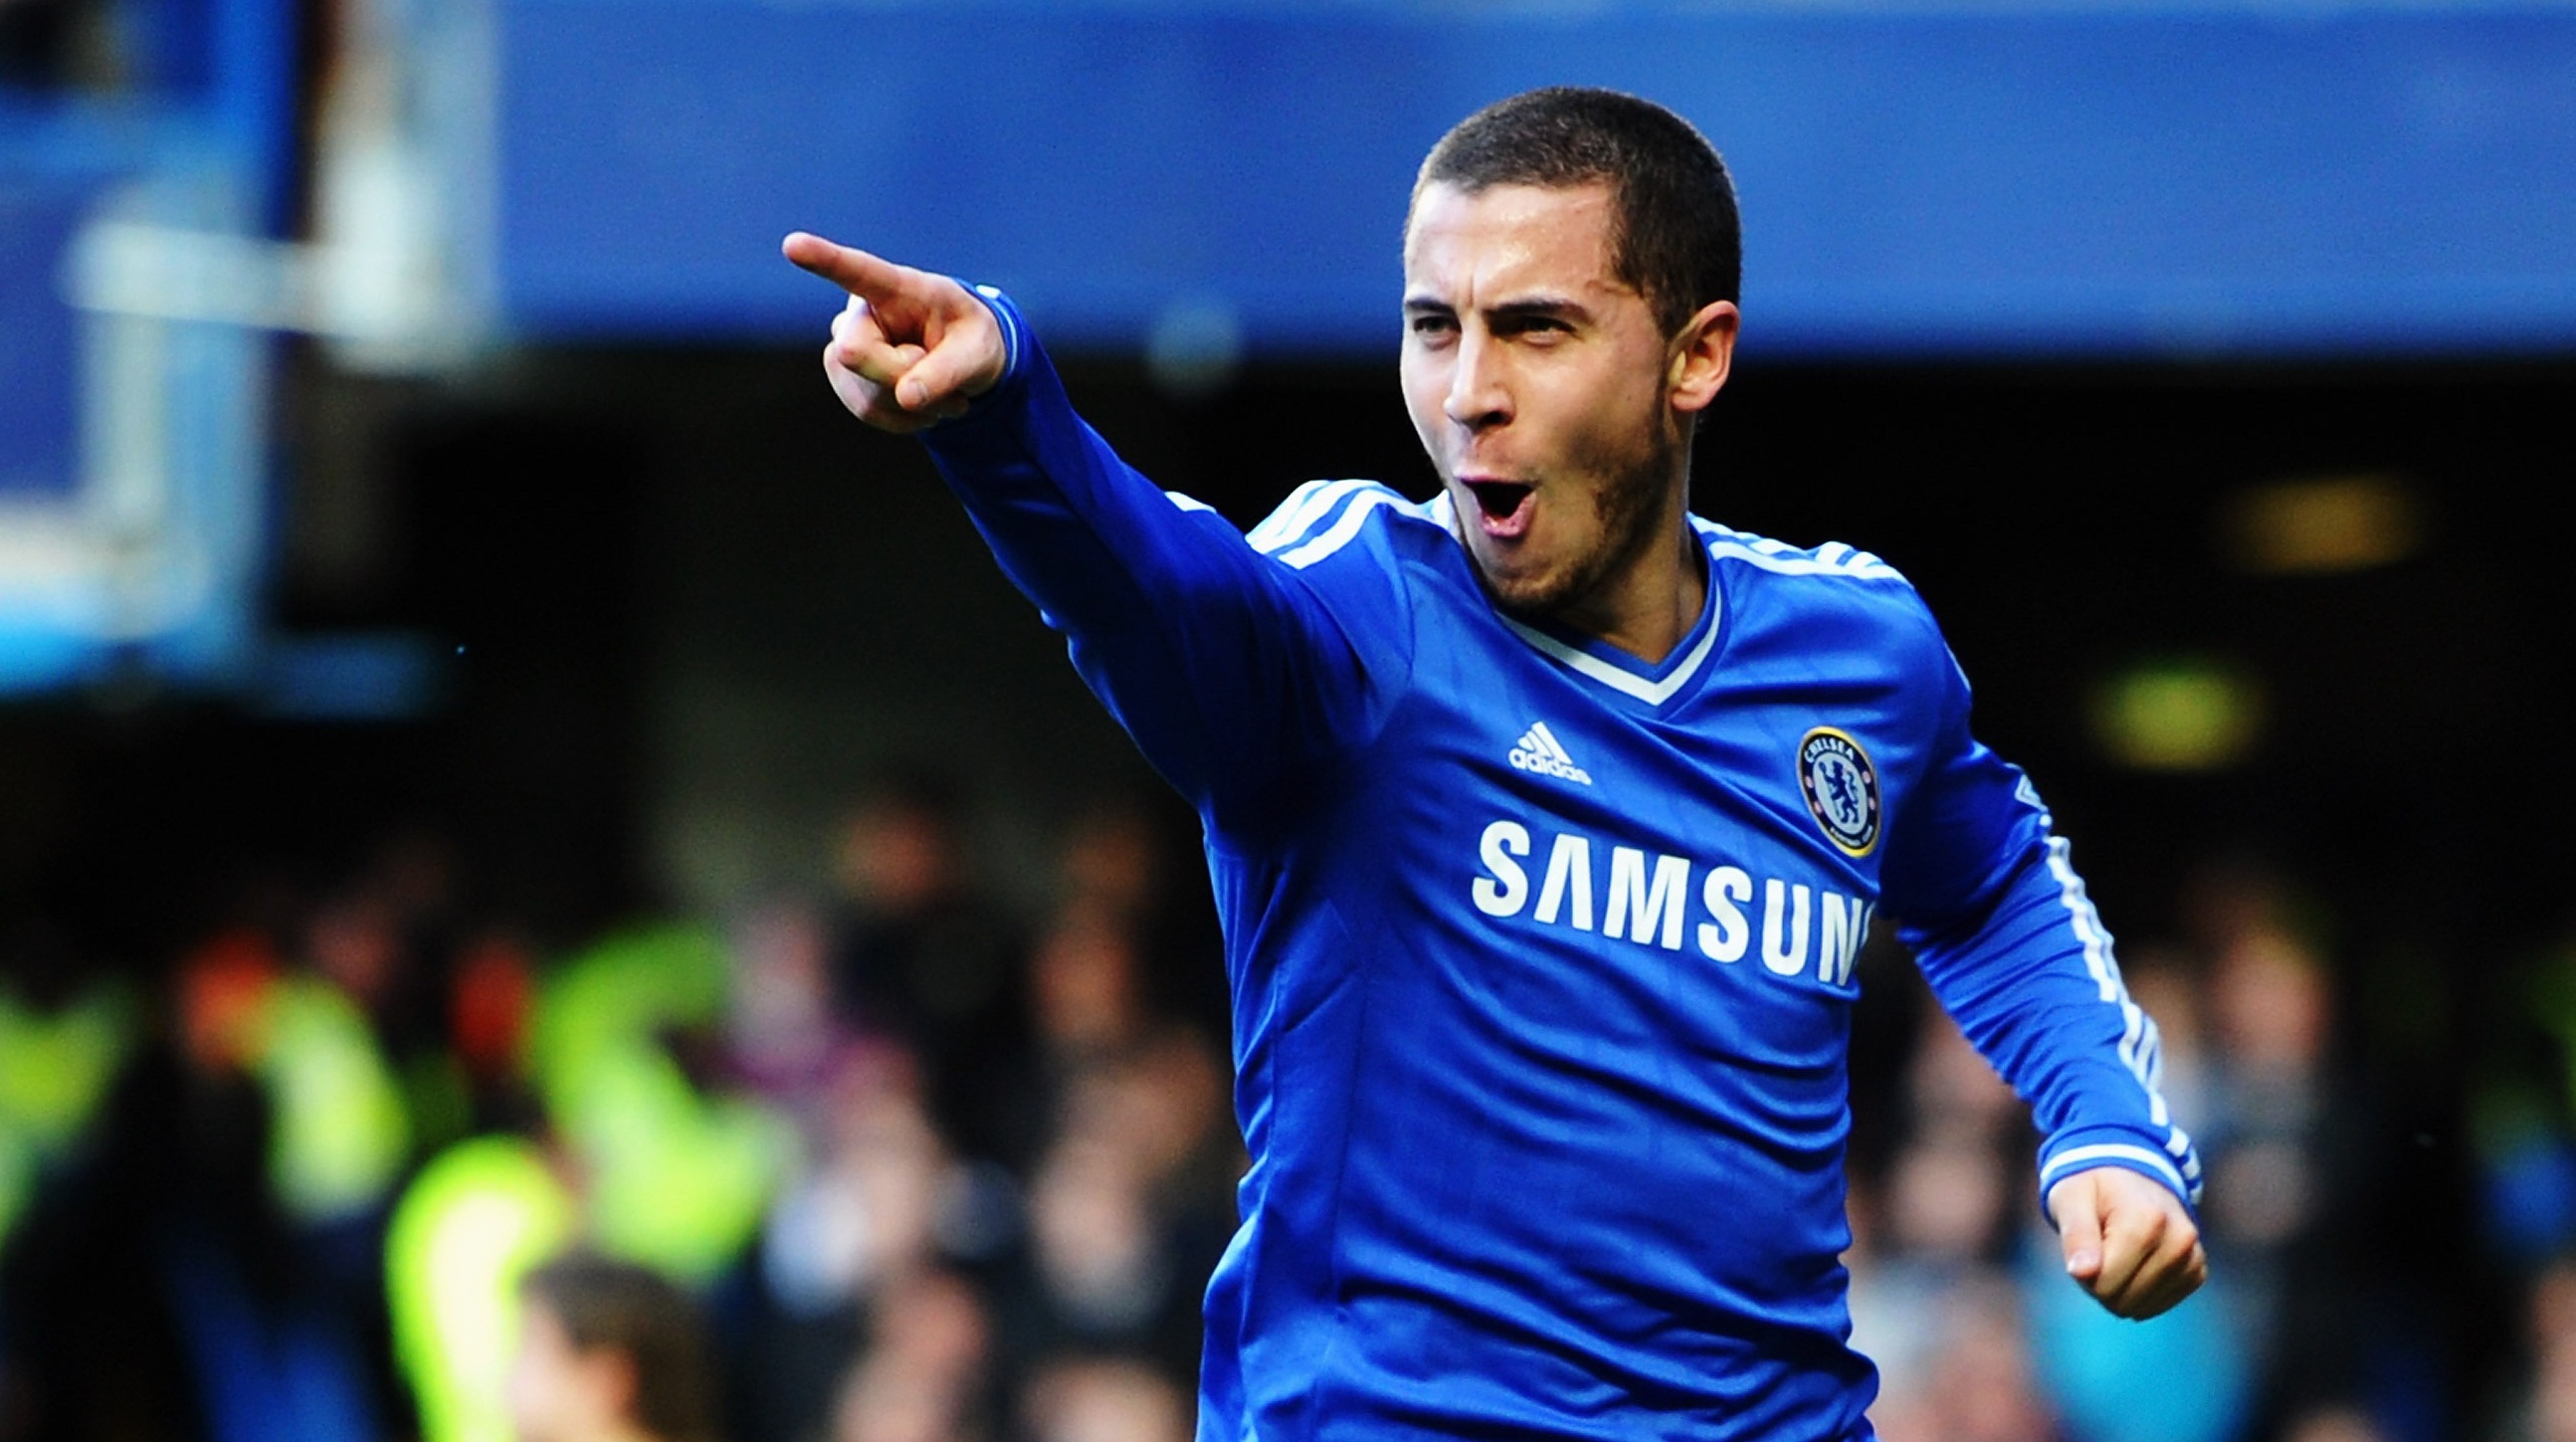 Eden Hazard Wallpaper 242015 Hd Wallpaper Backgrounds